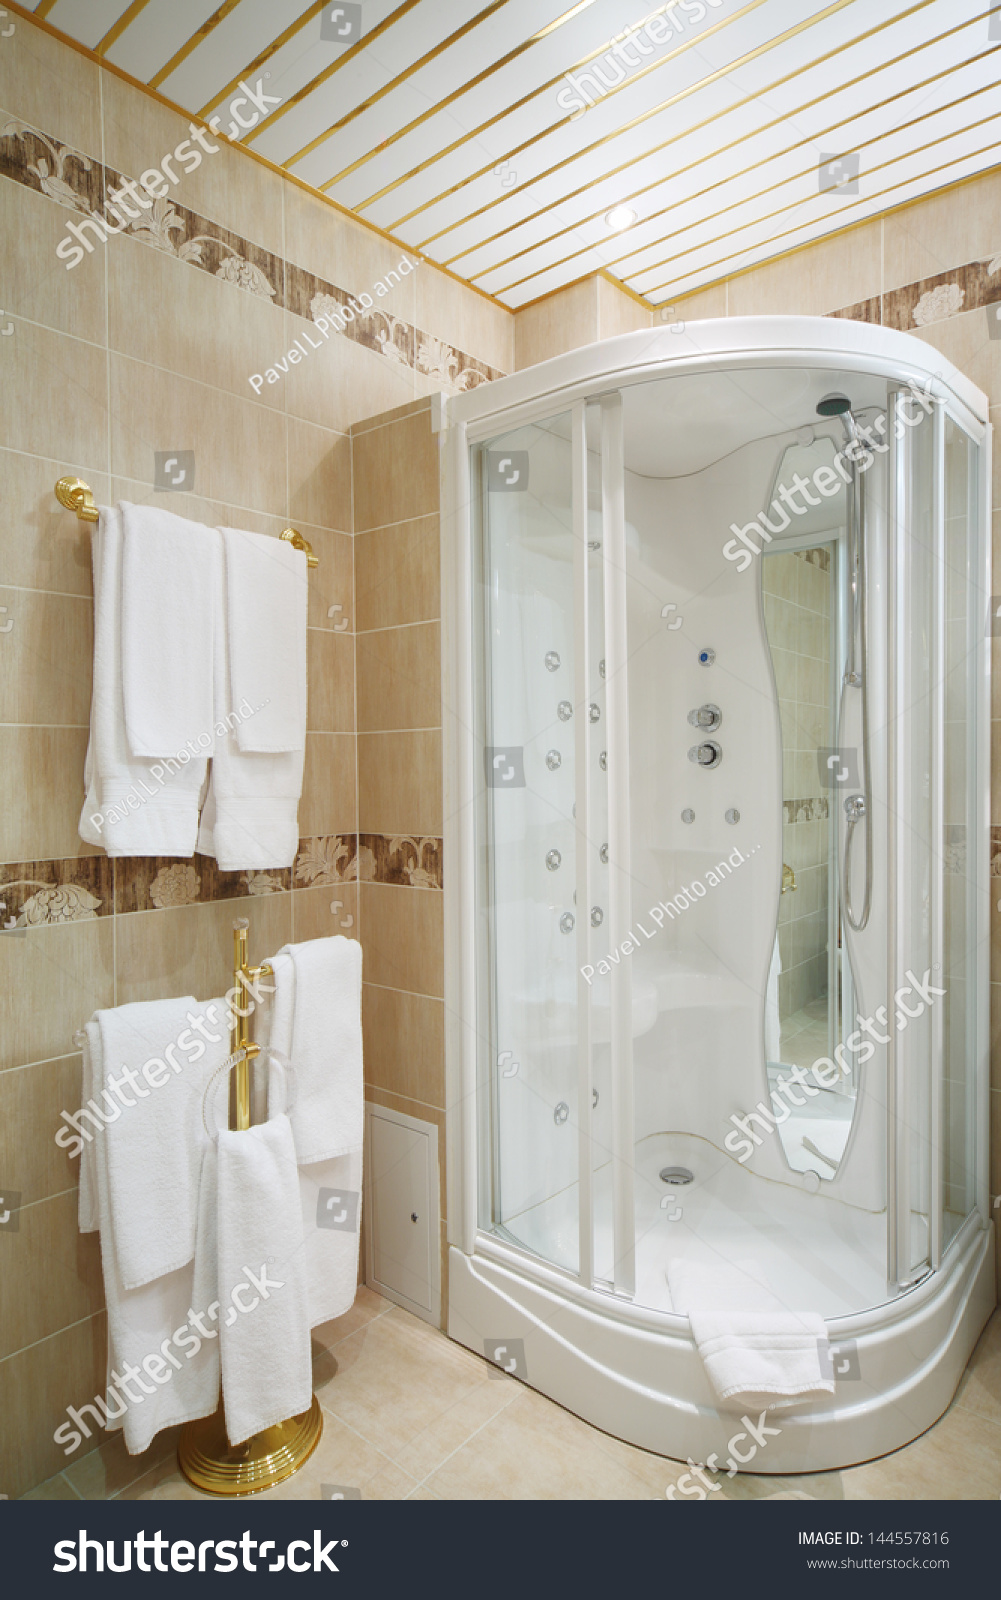 Clean Bathroom Shower Cabin Hangers White Stock Photo (Royalty Free ...